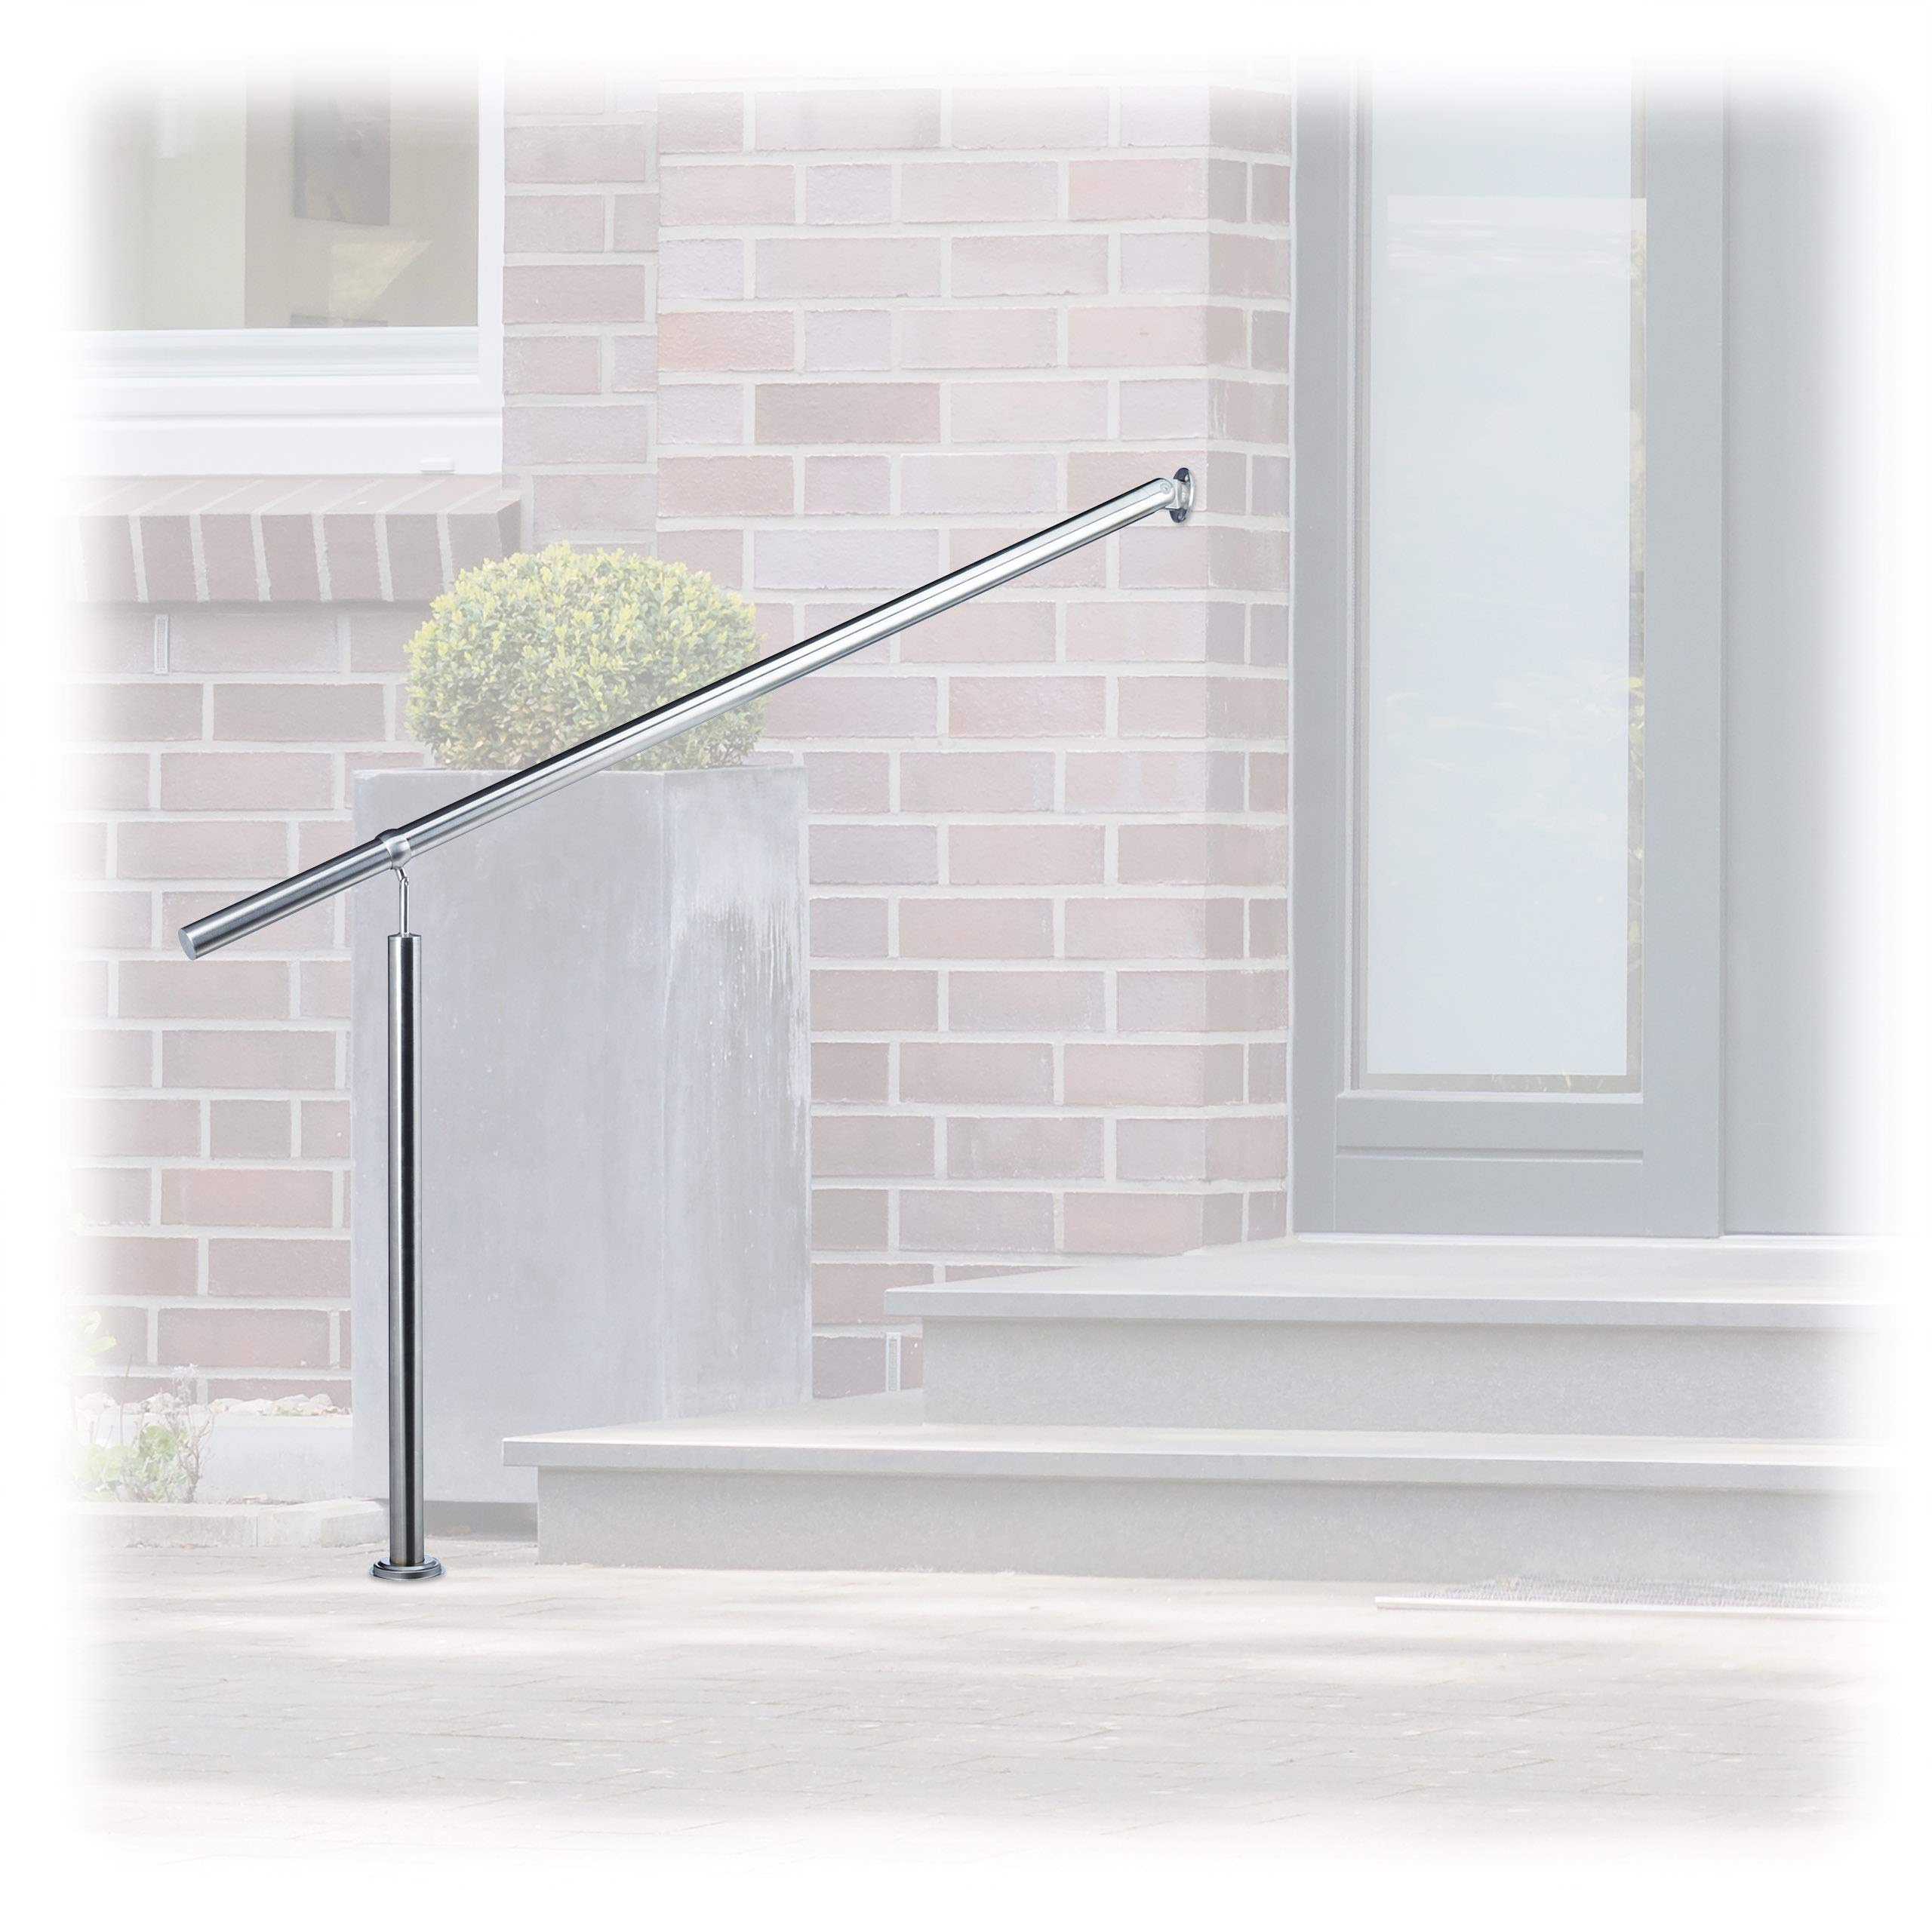 Relaxdays Stainless Steel Handrail for in-and Outdoor Use, with Wall Fittings and Metal Plugs, Silver, 150 x 80 cm by Relaxdays